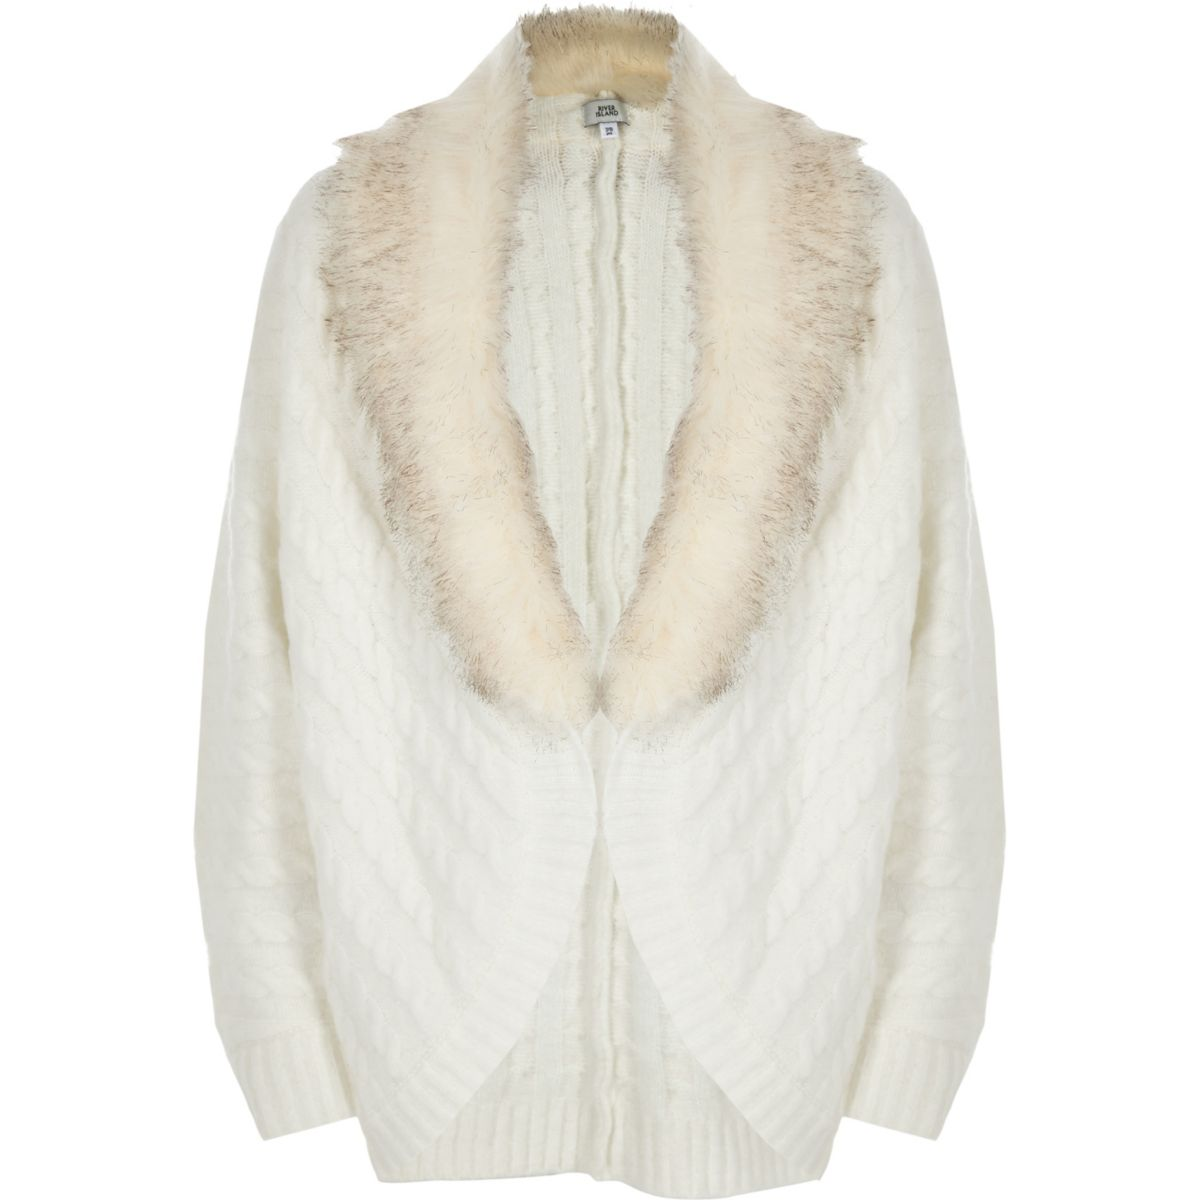 Girls cream cable knit faux fur cardigan